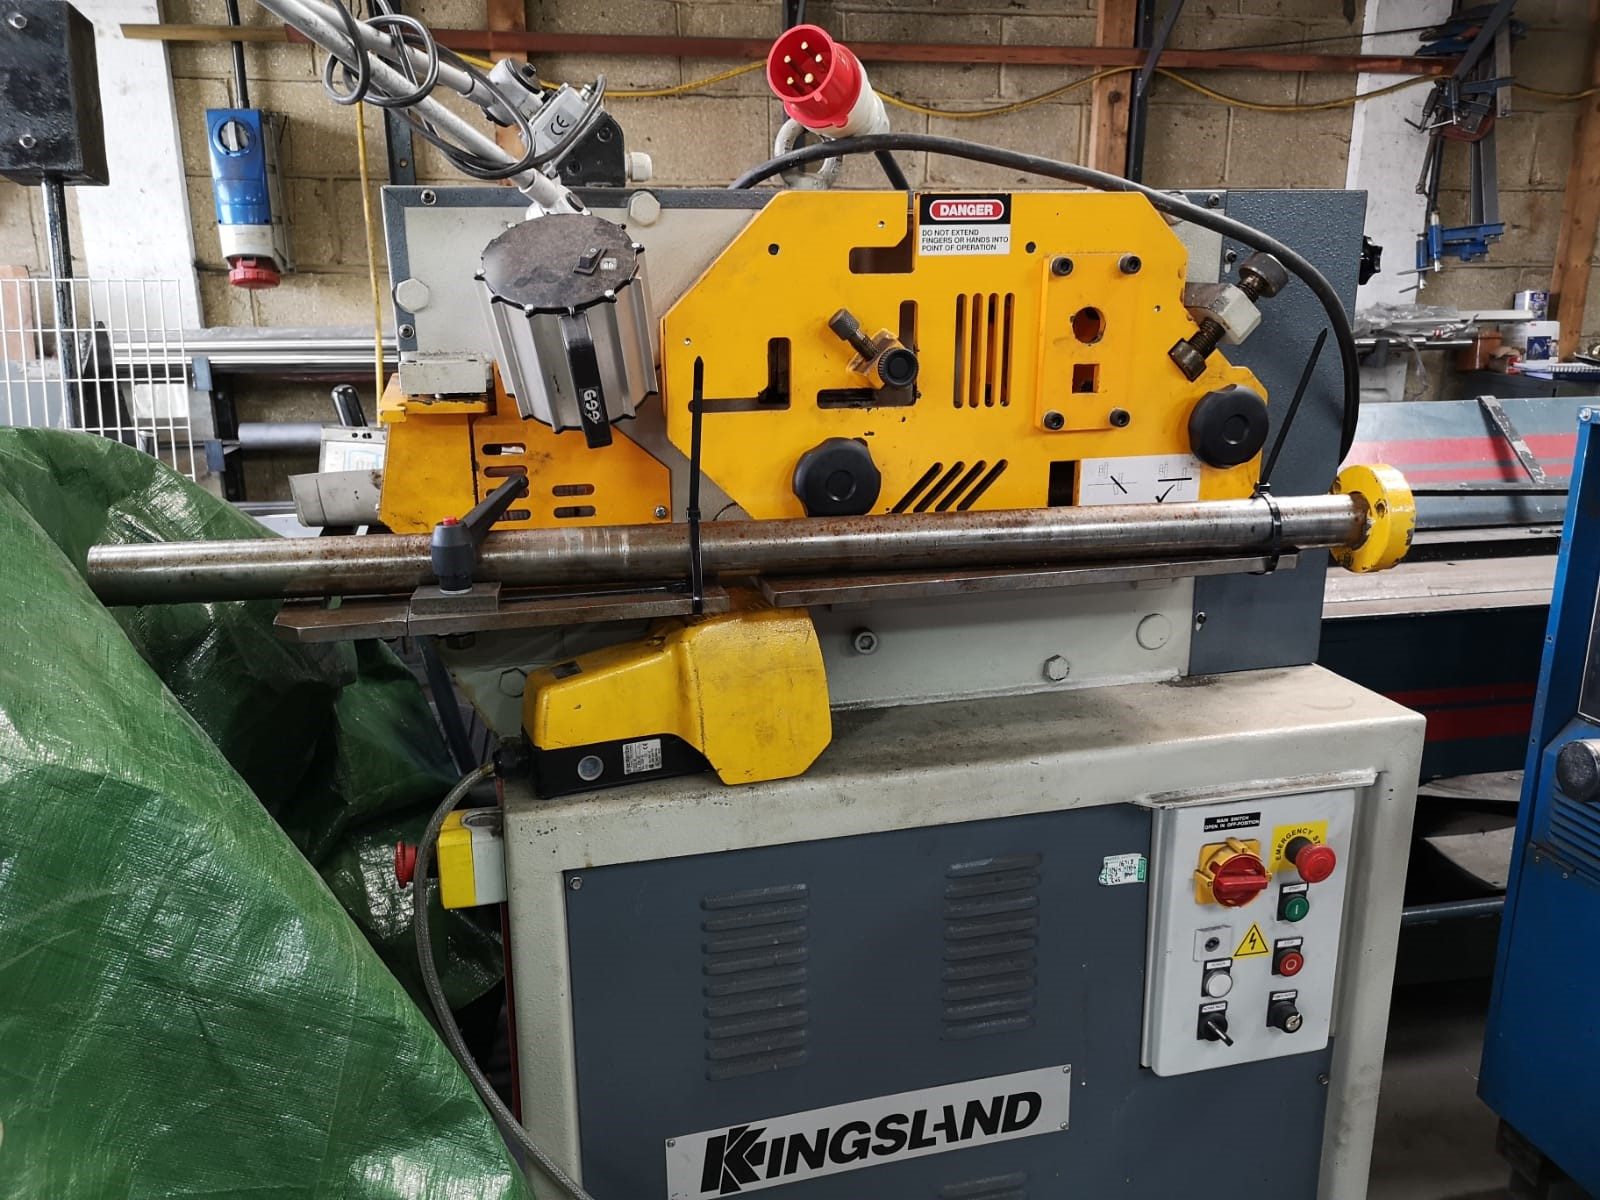 Kingsland Compact 40 steelworker | Chiviott - Used Machine Tools